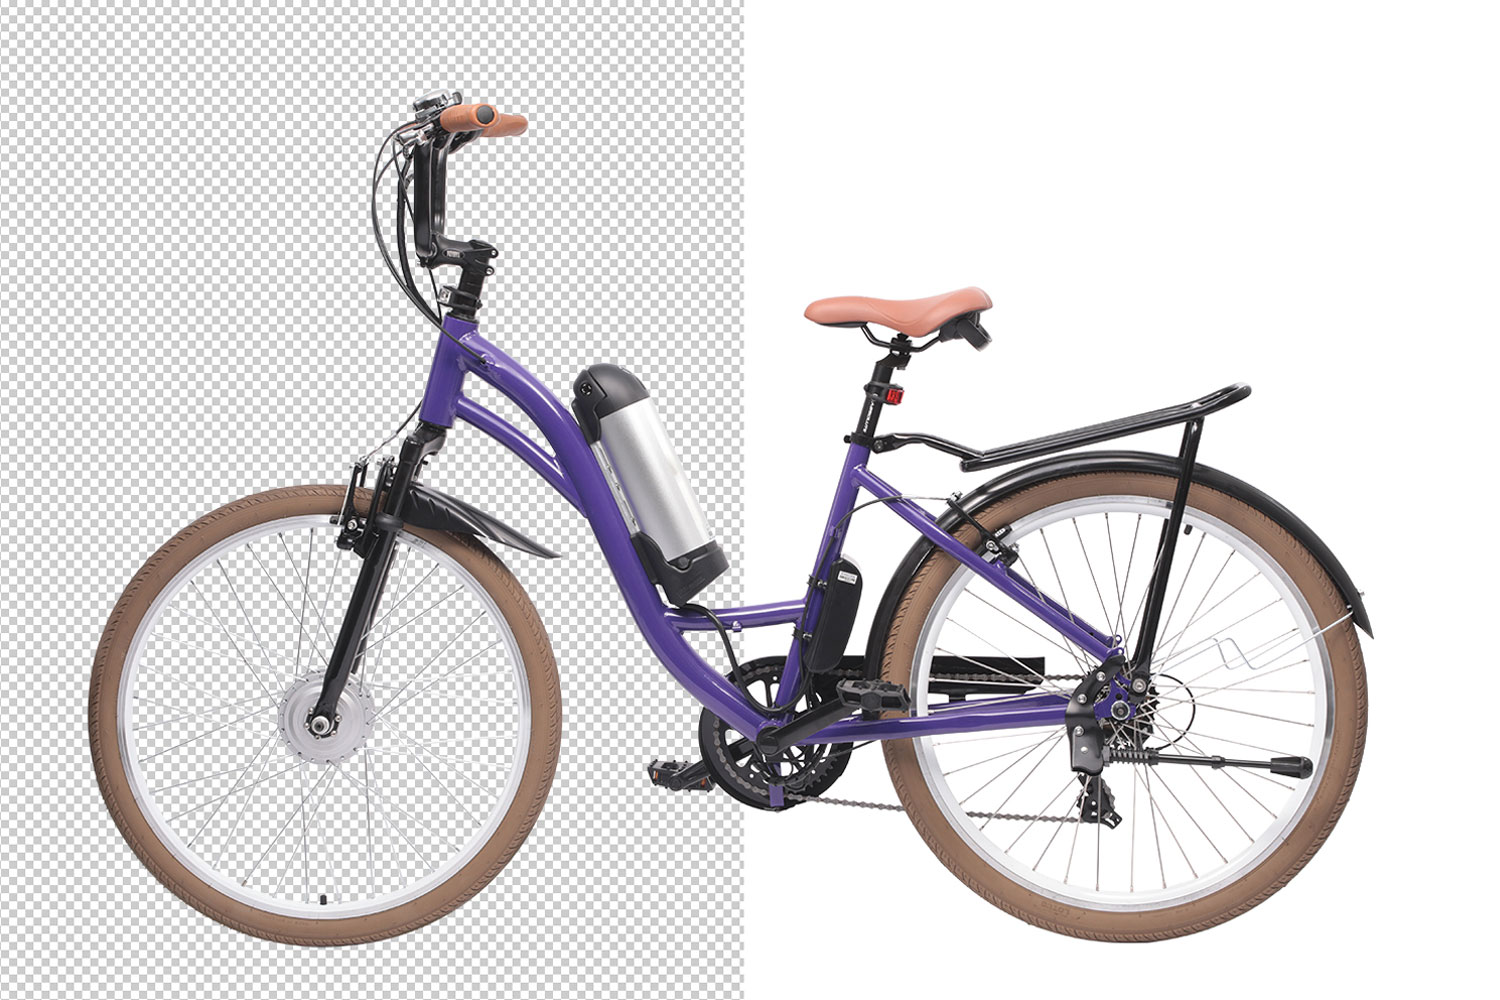 affordable clipping path service